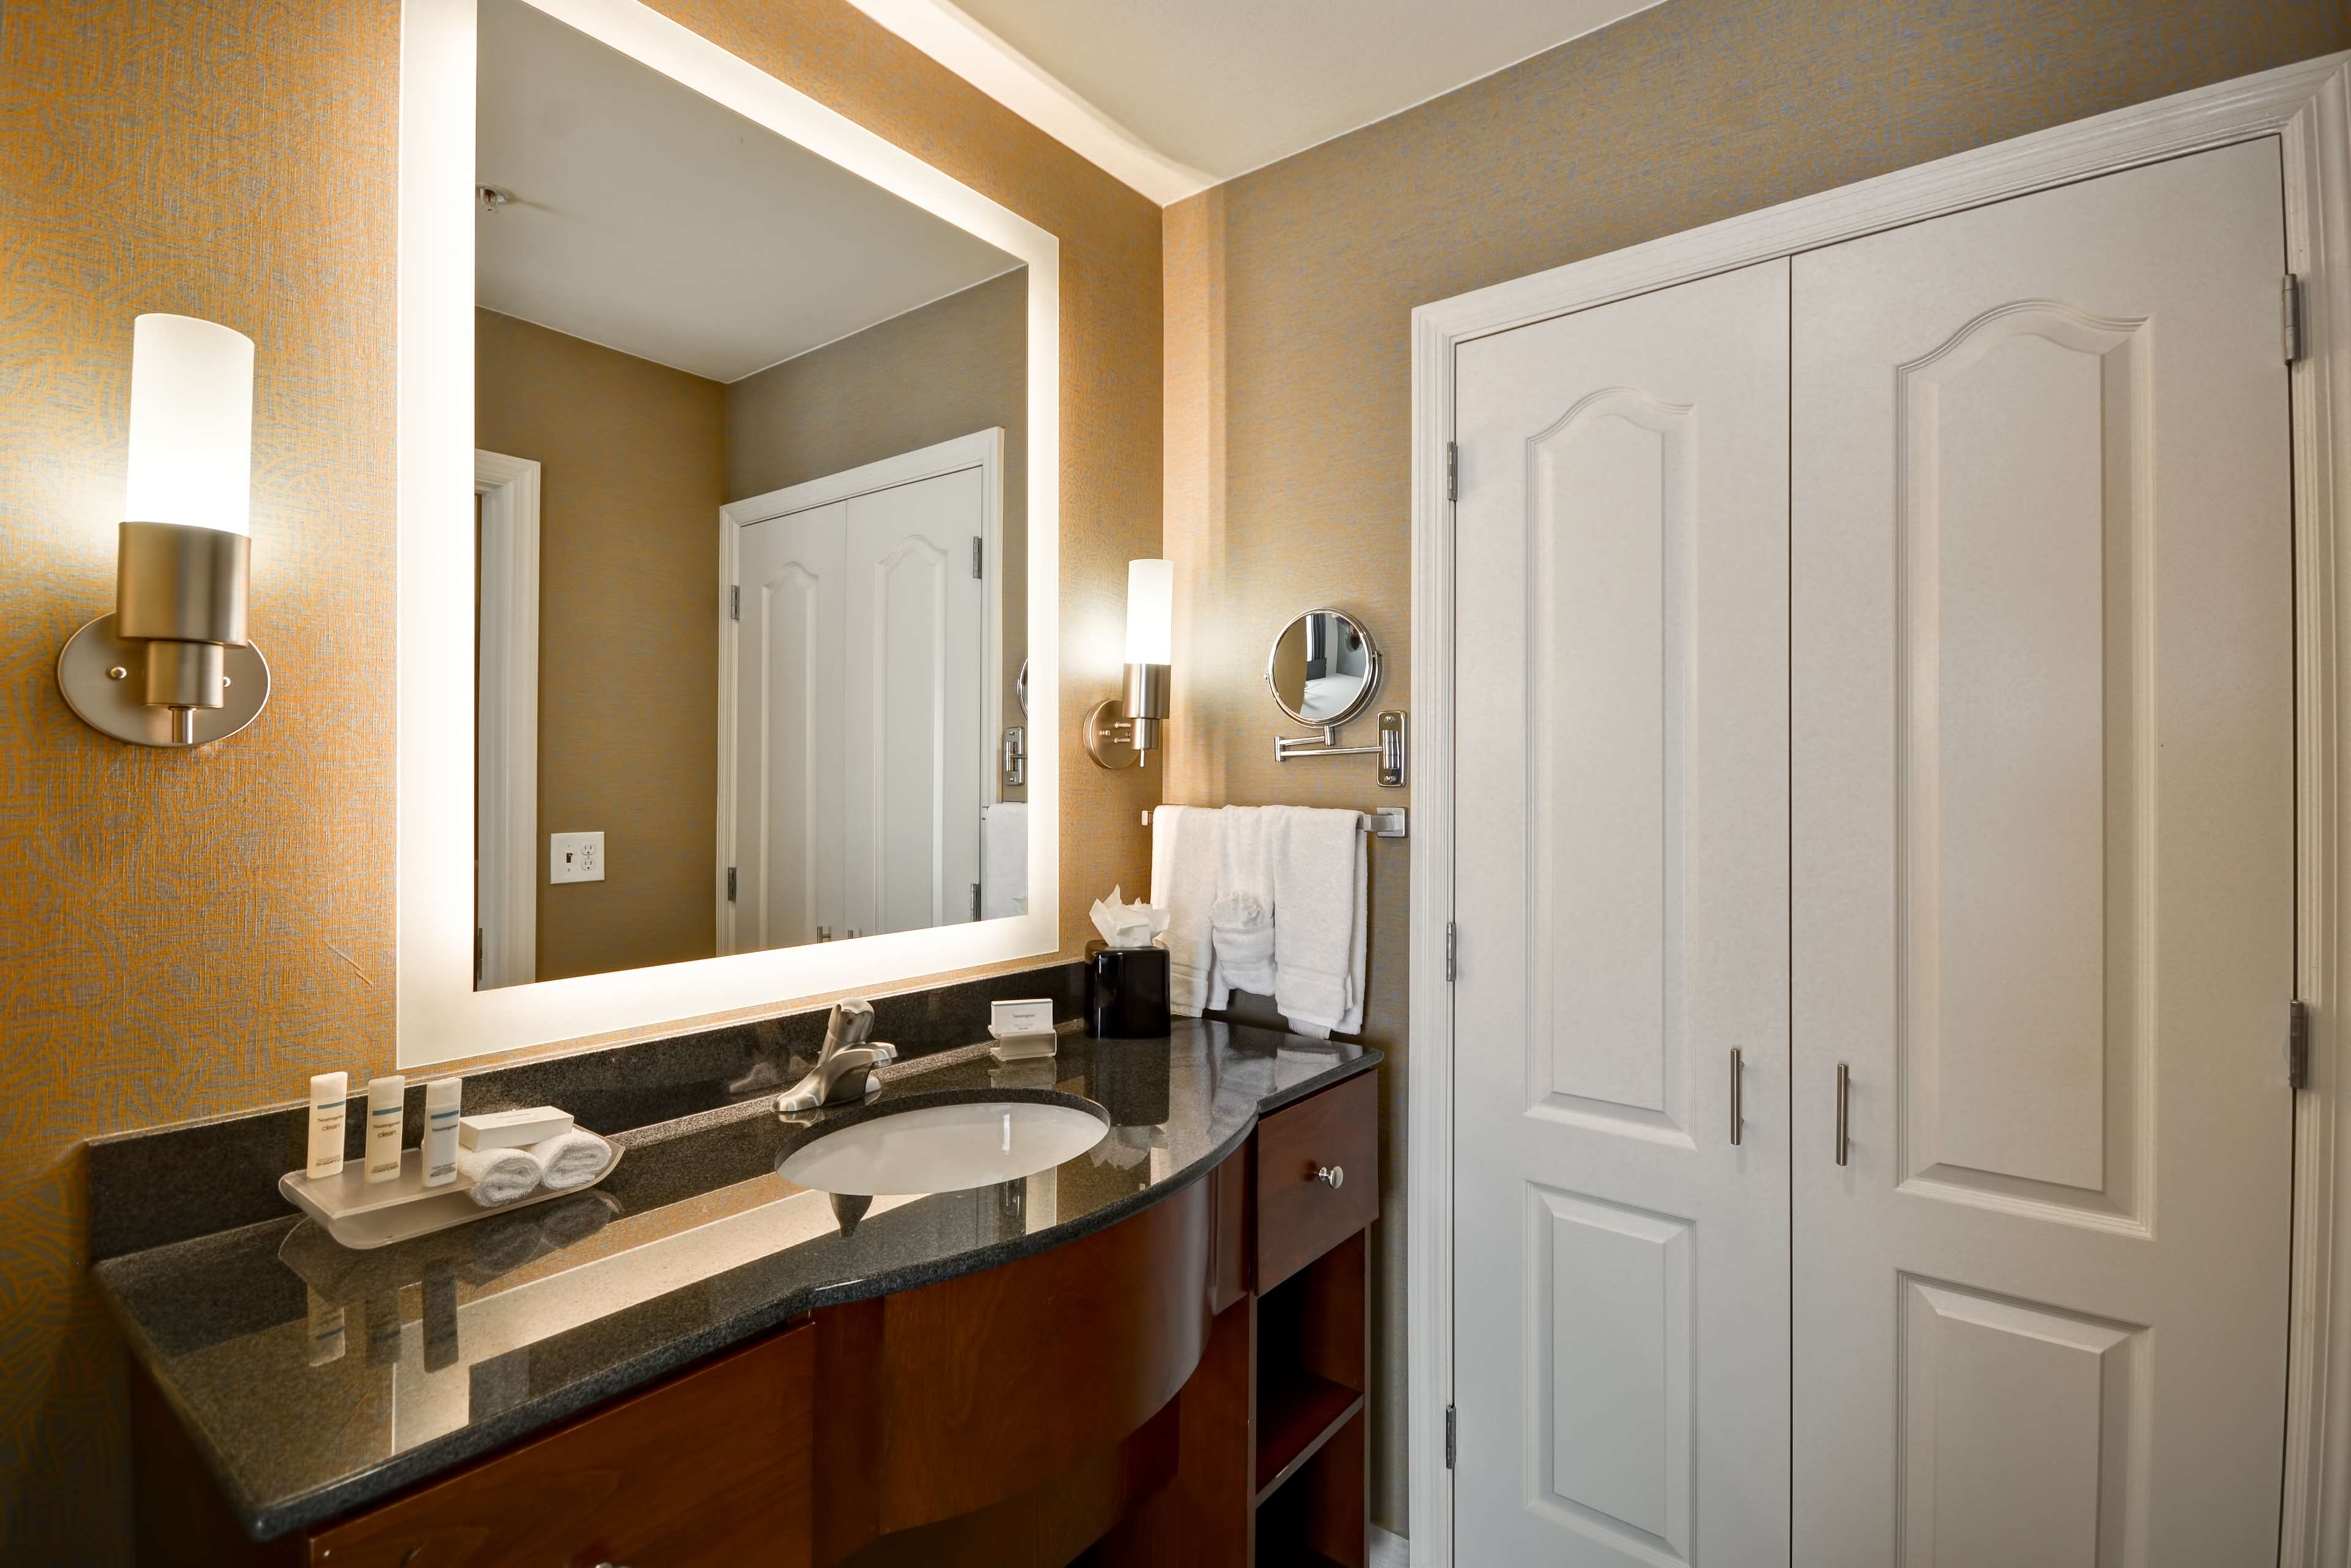 Homewood Suites by Hilton Wilmington/Mayfaire, NC image 31